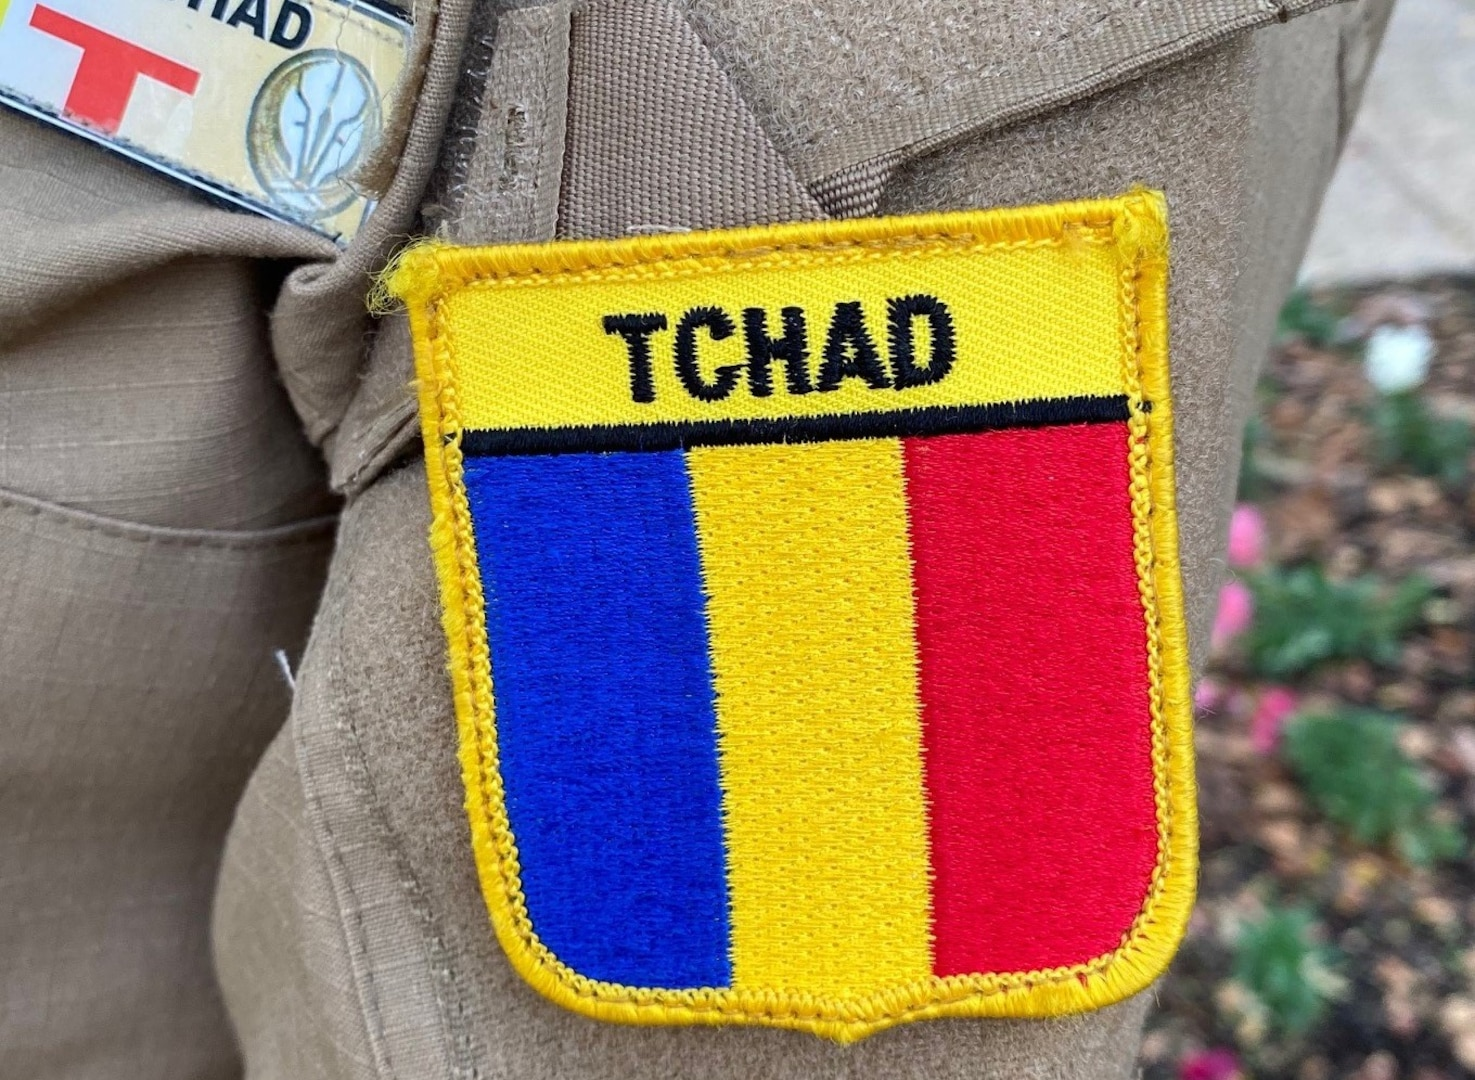 The Republic of Chad flag is shown on the uniform of one of the first two women in that service to become a pilot. They are attending General English Training at the Defense Language Institute English Language Center, Joint Base San Antonio-Lackland.